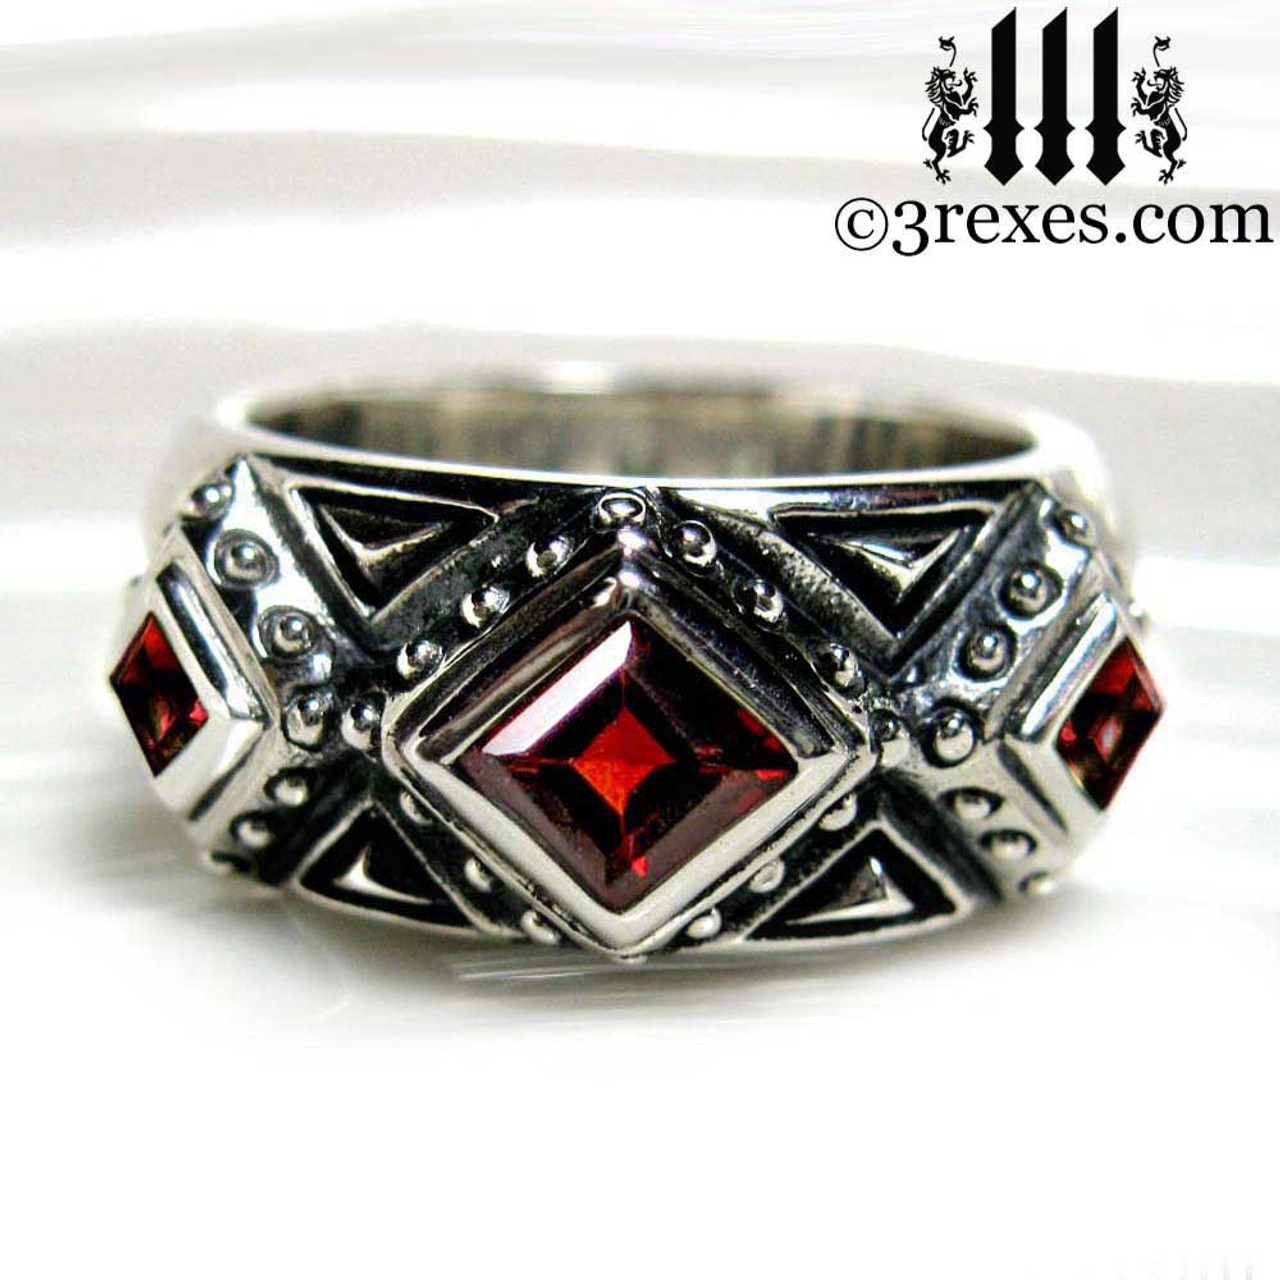 Gothic Wedding Rings.3 Kings Gothic Wedding Ring